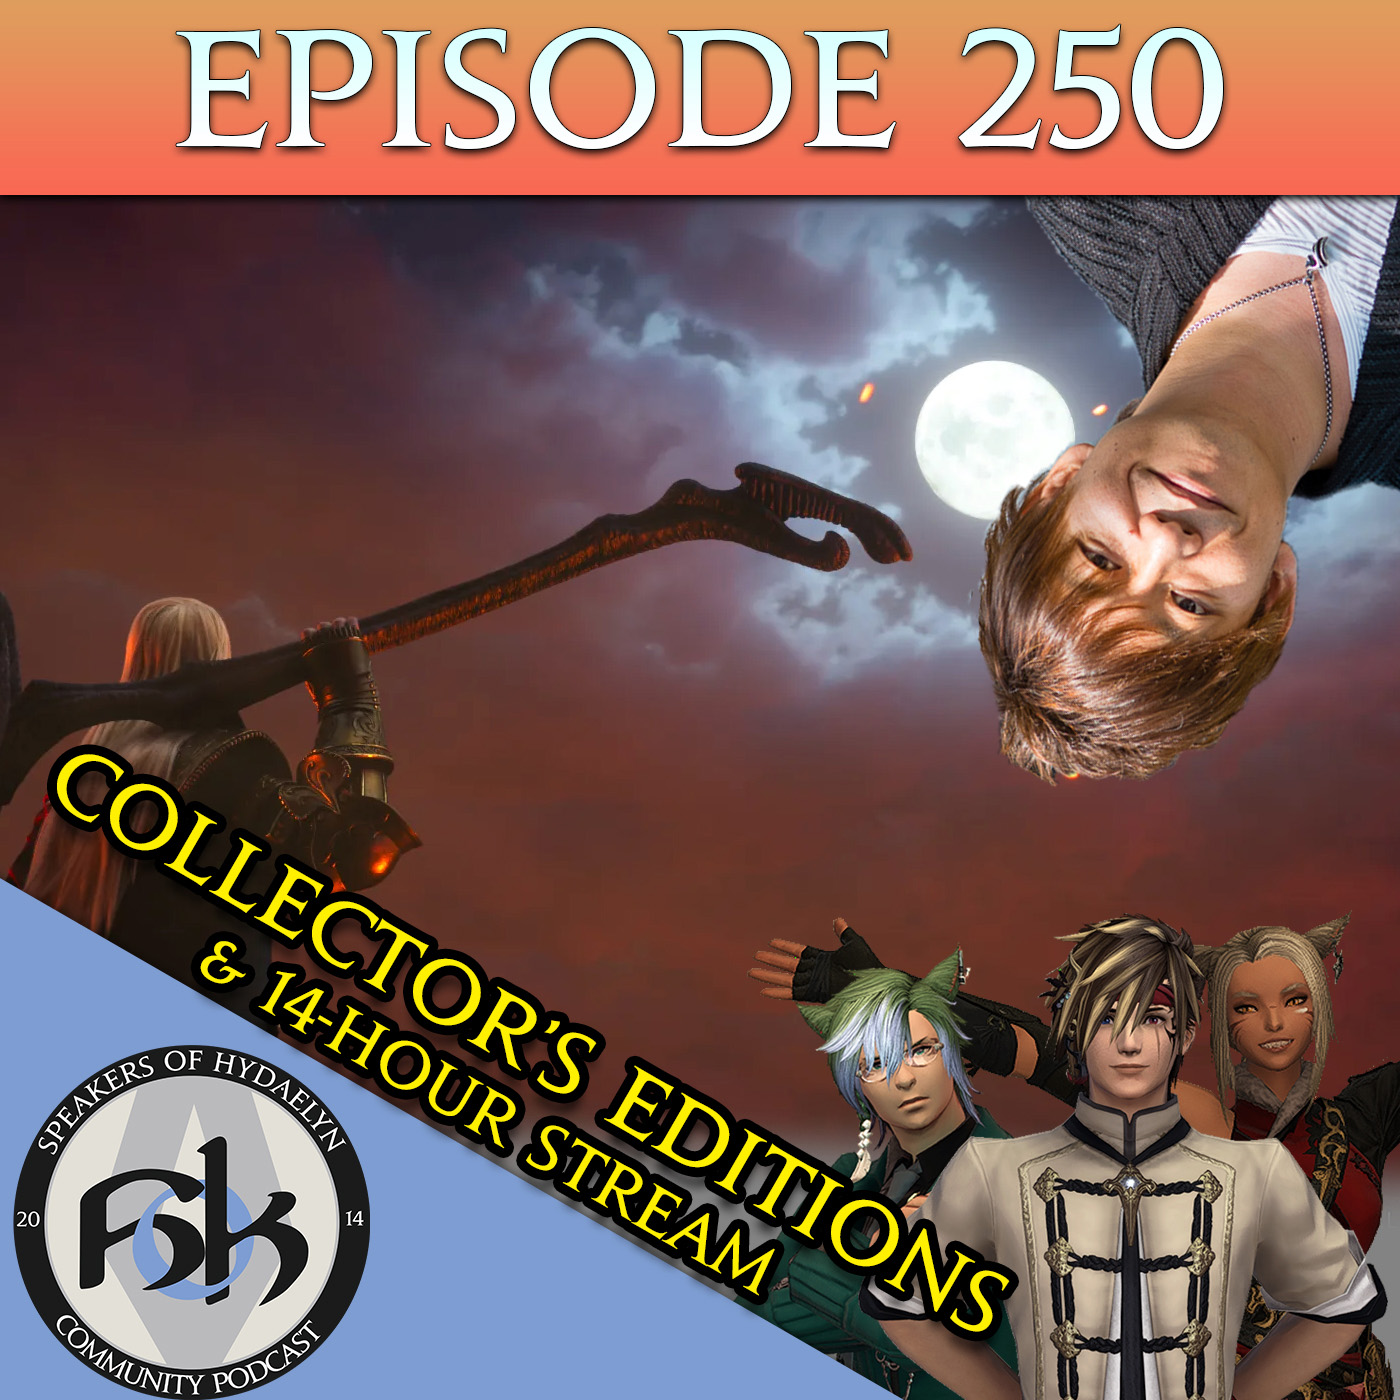 Episode 250 | Collector's Editions Sold Out & 14-Hour Stream